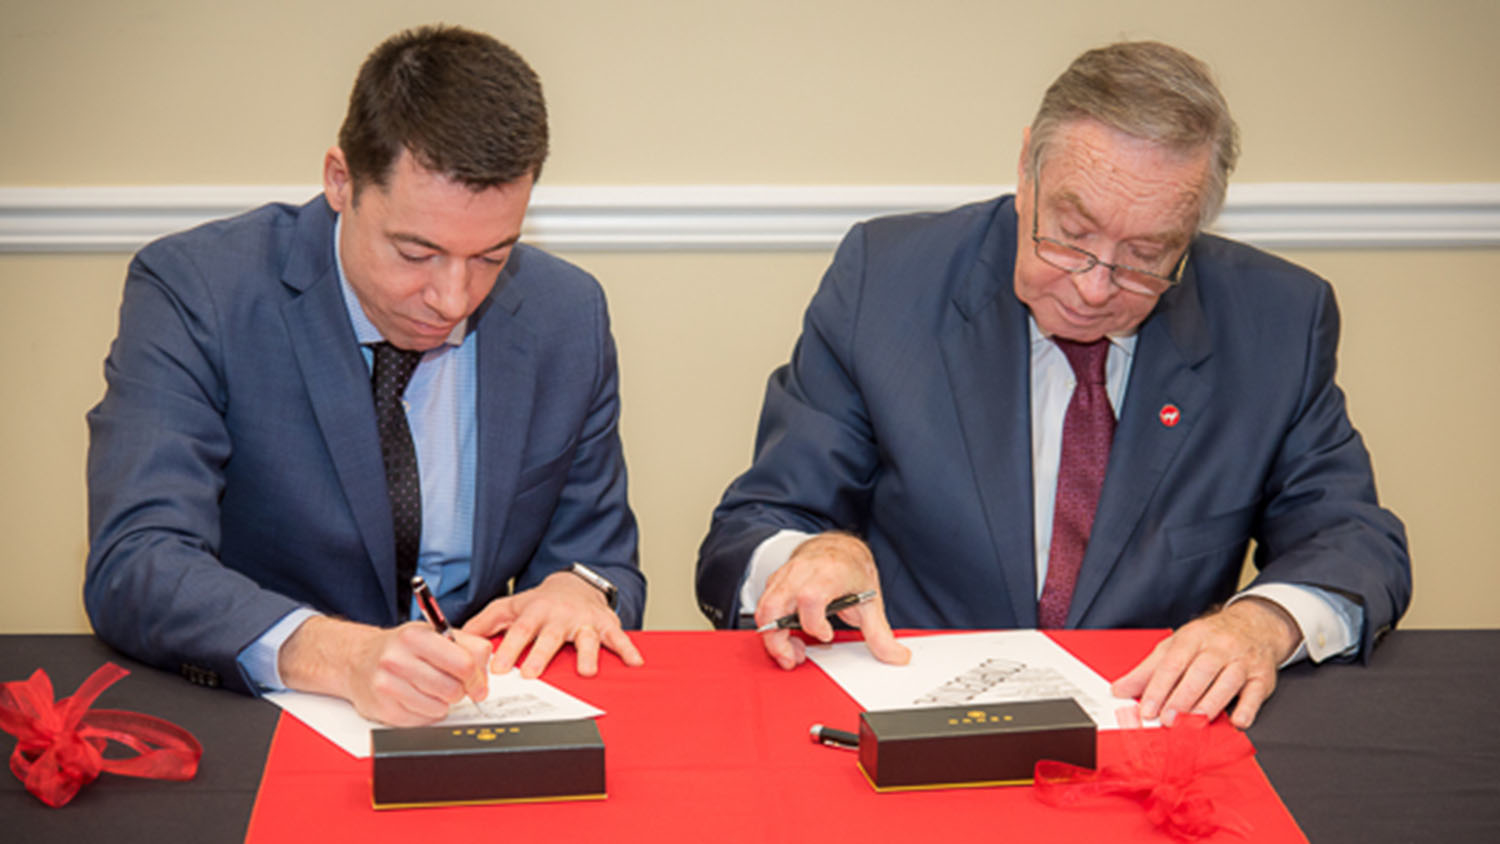 and DSM Nutritional Products'Eduardo Alberto and NC State's Mladen Vouk sign a memorandum of understanding (MOU).